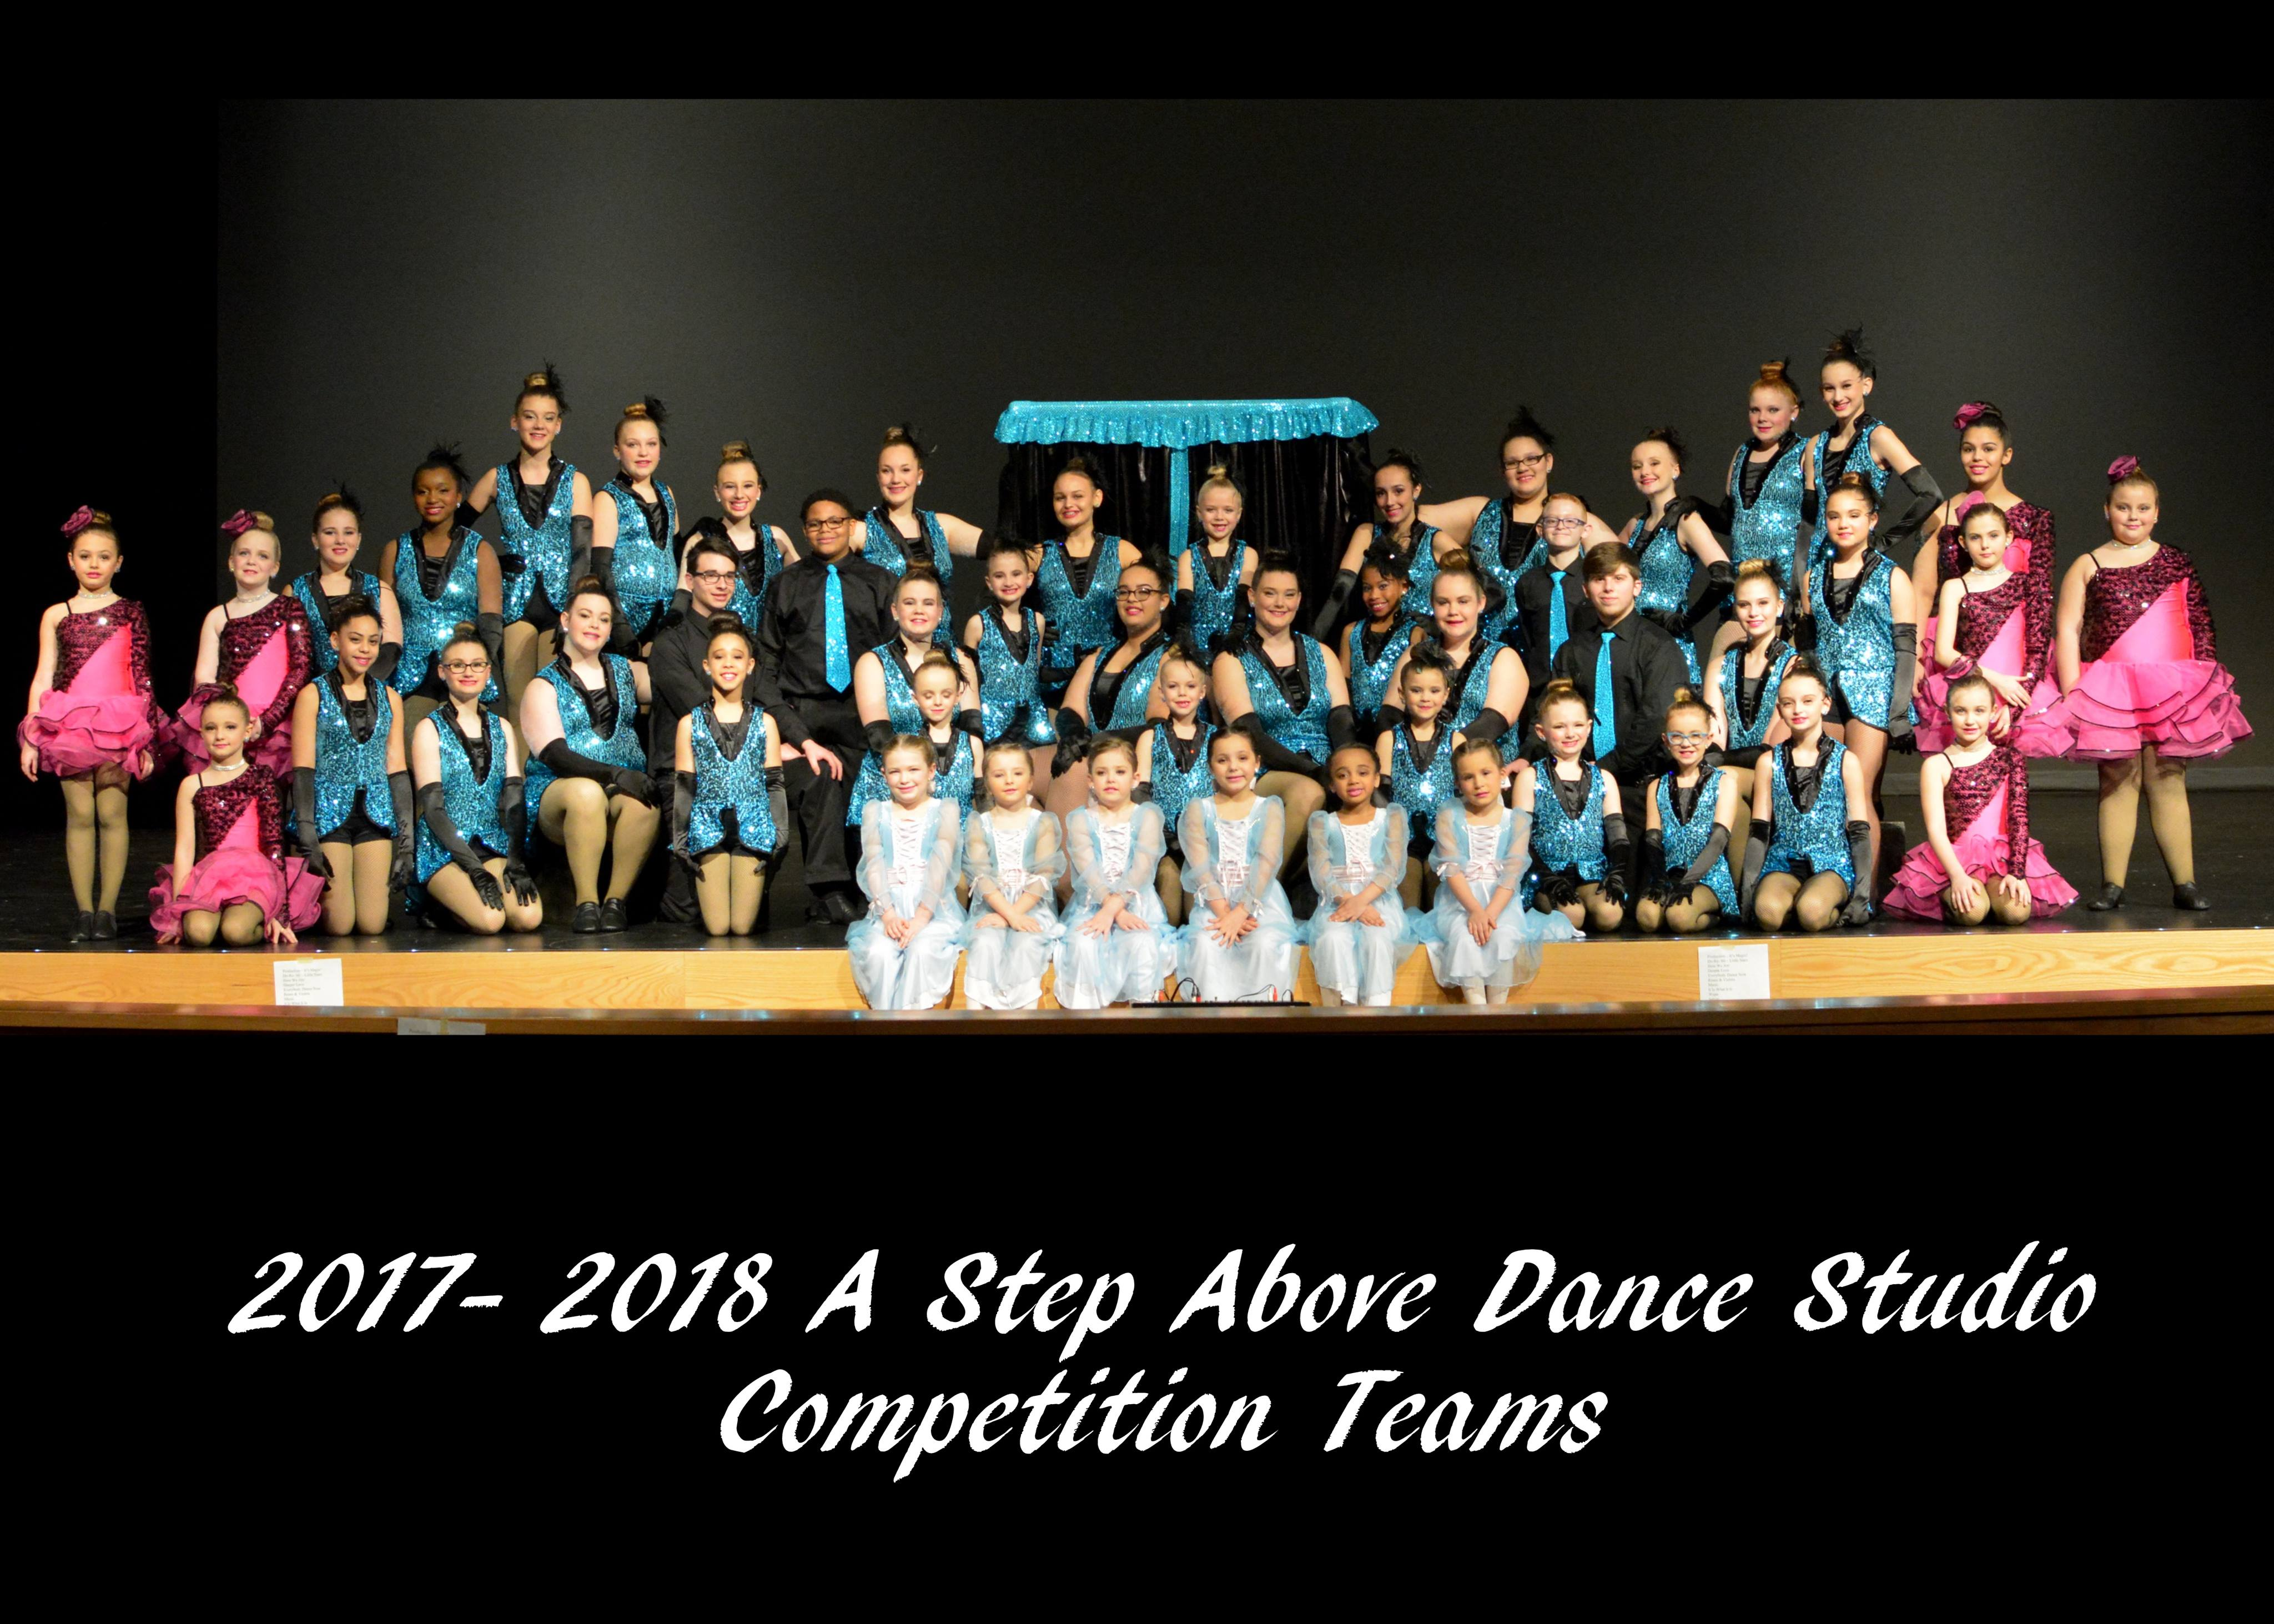 2017 Competition Dance Team Results at A Step Above Dance